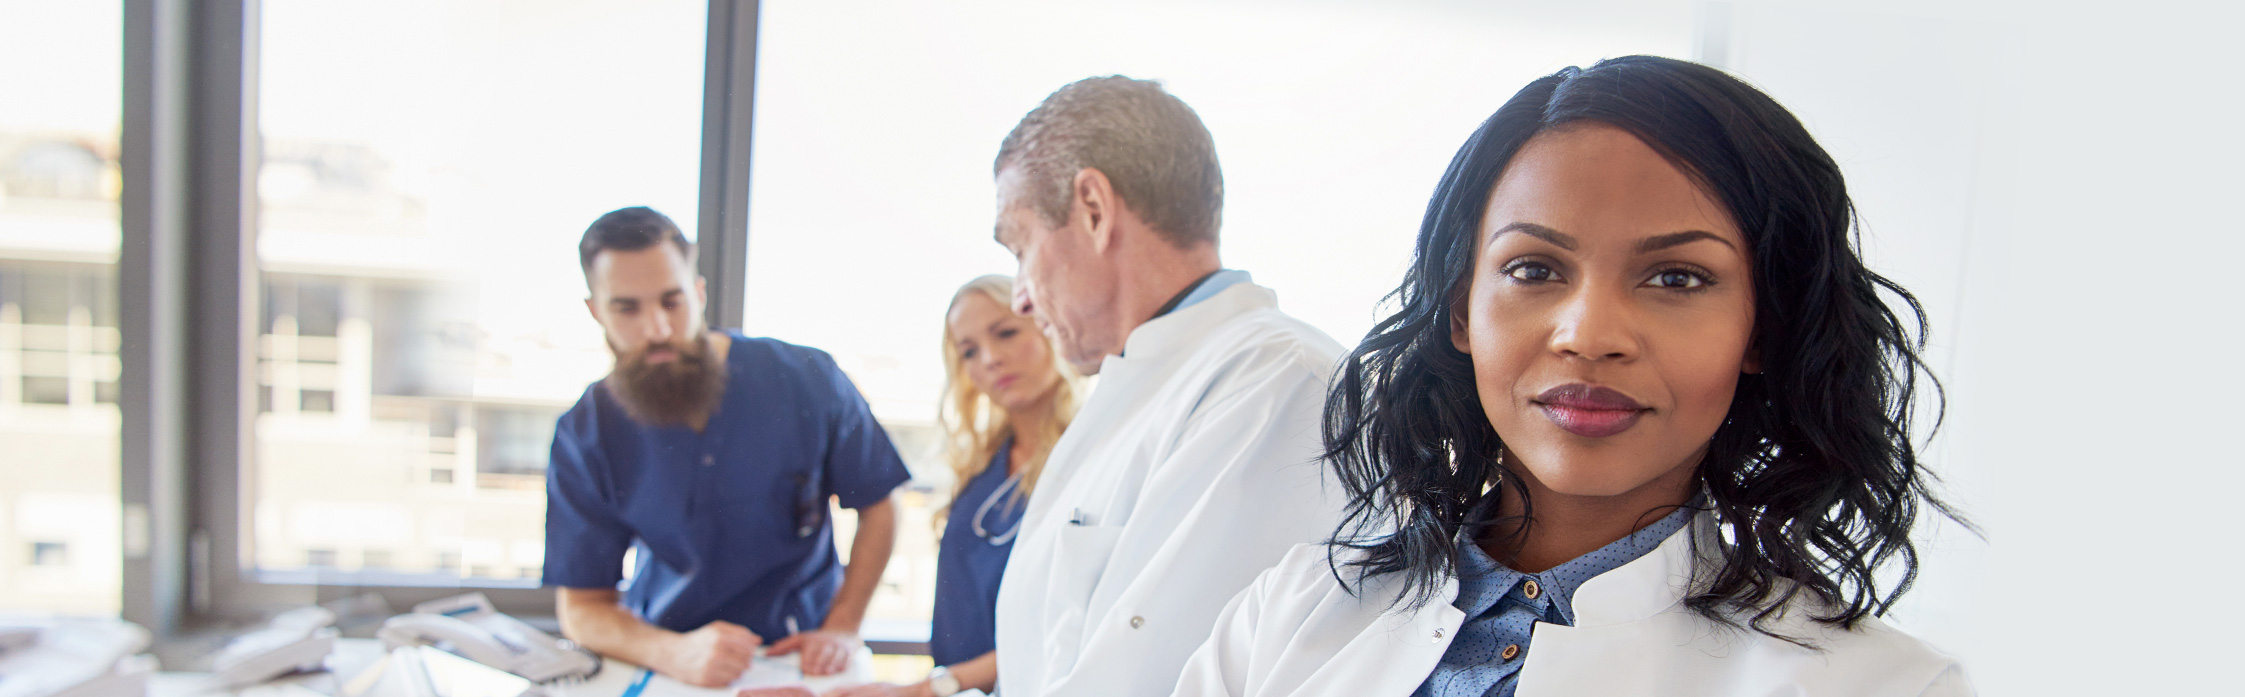 Picture of people wearing white coats with blue in the back